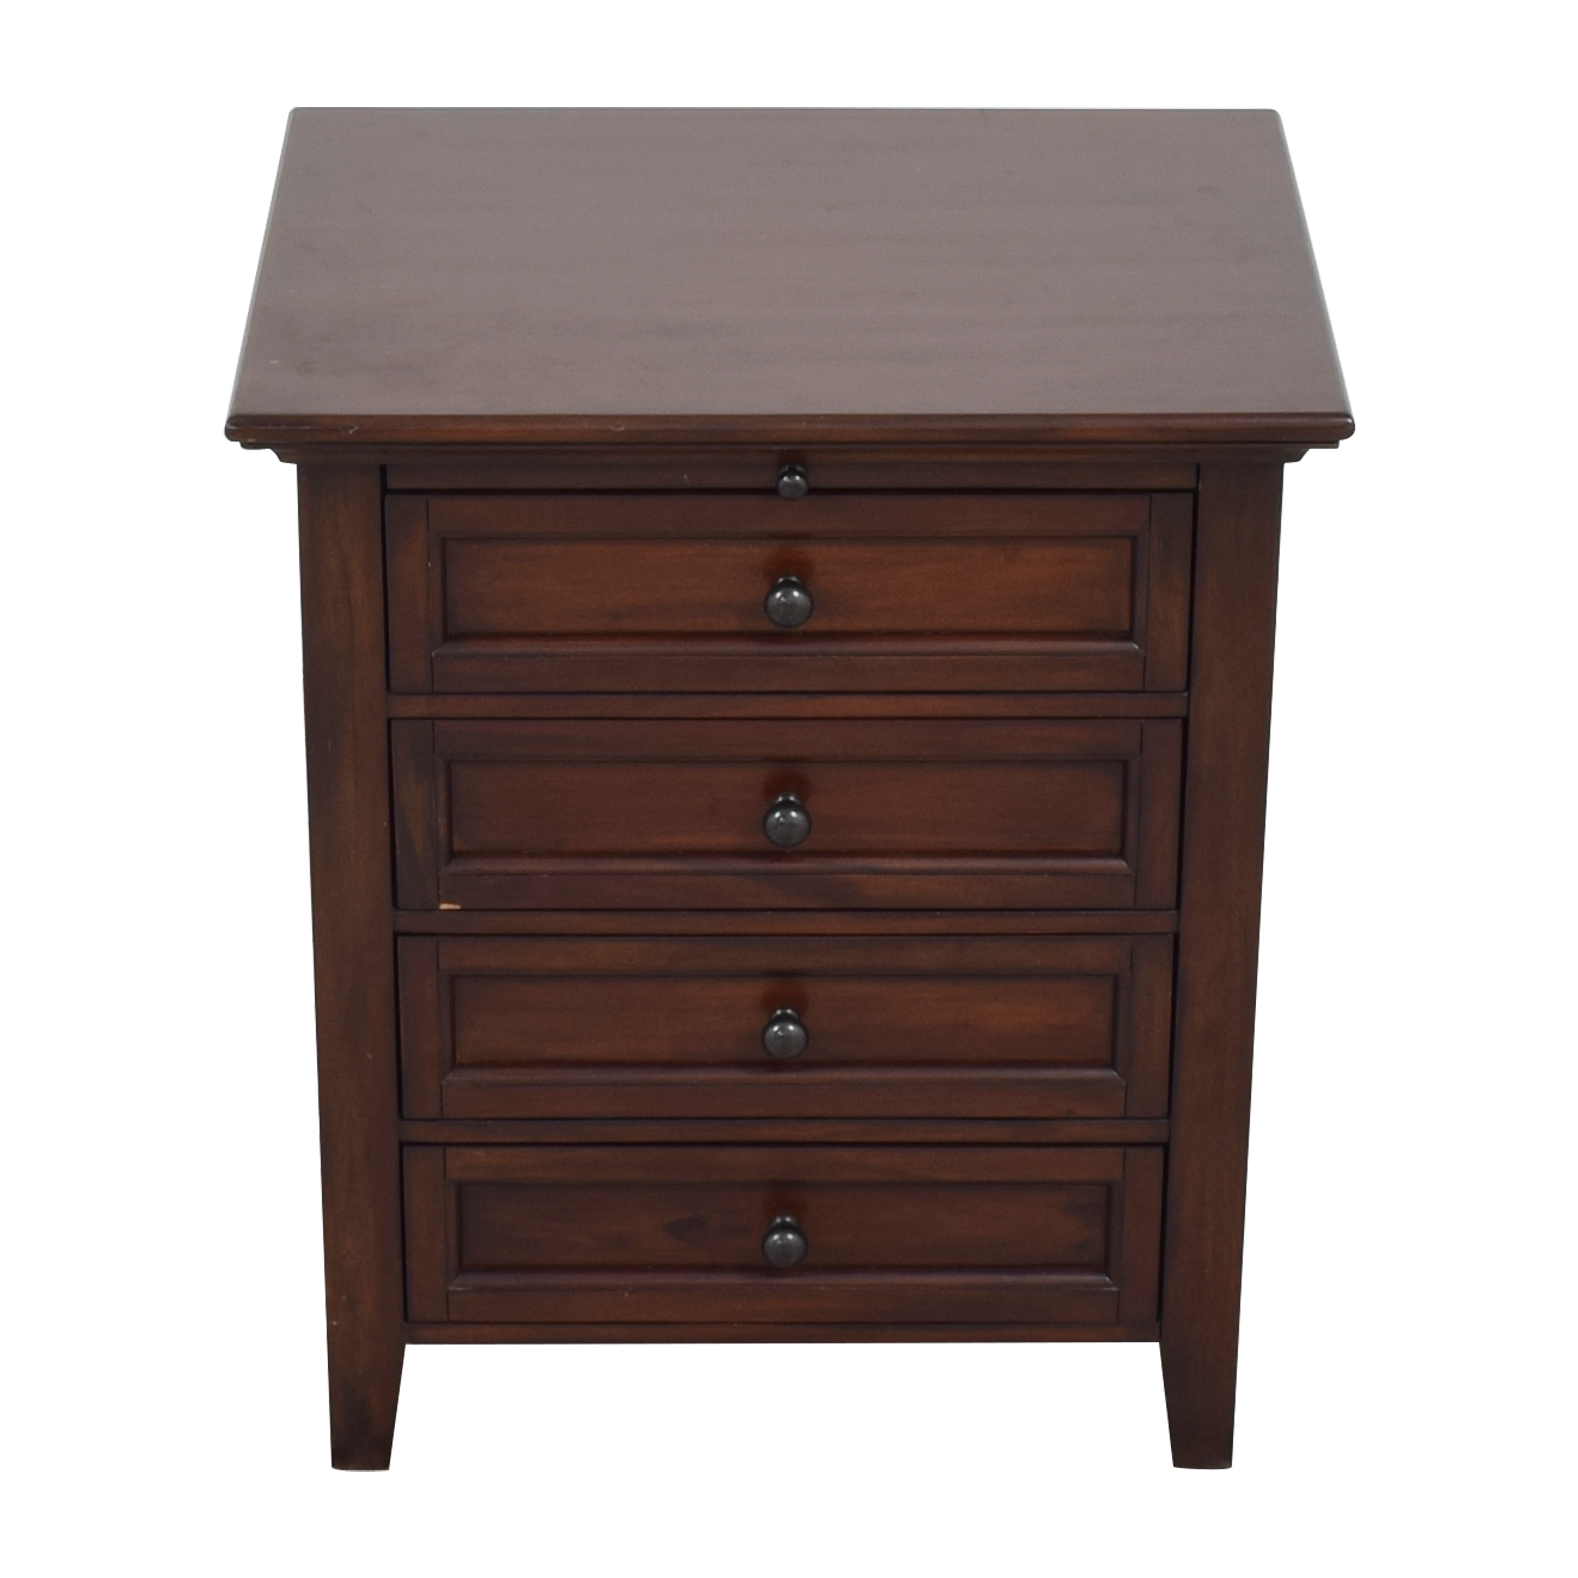 Pottery Barn Hudson 4-Drawer Nightstand / End Tables